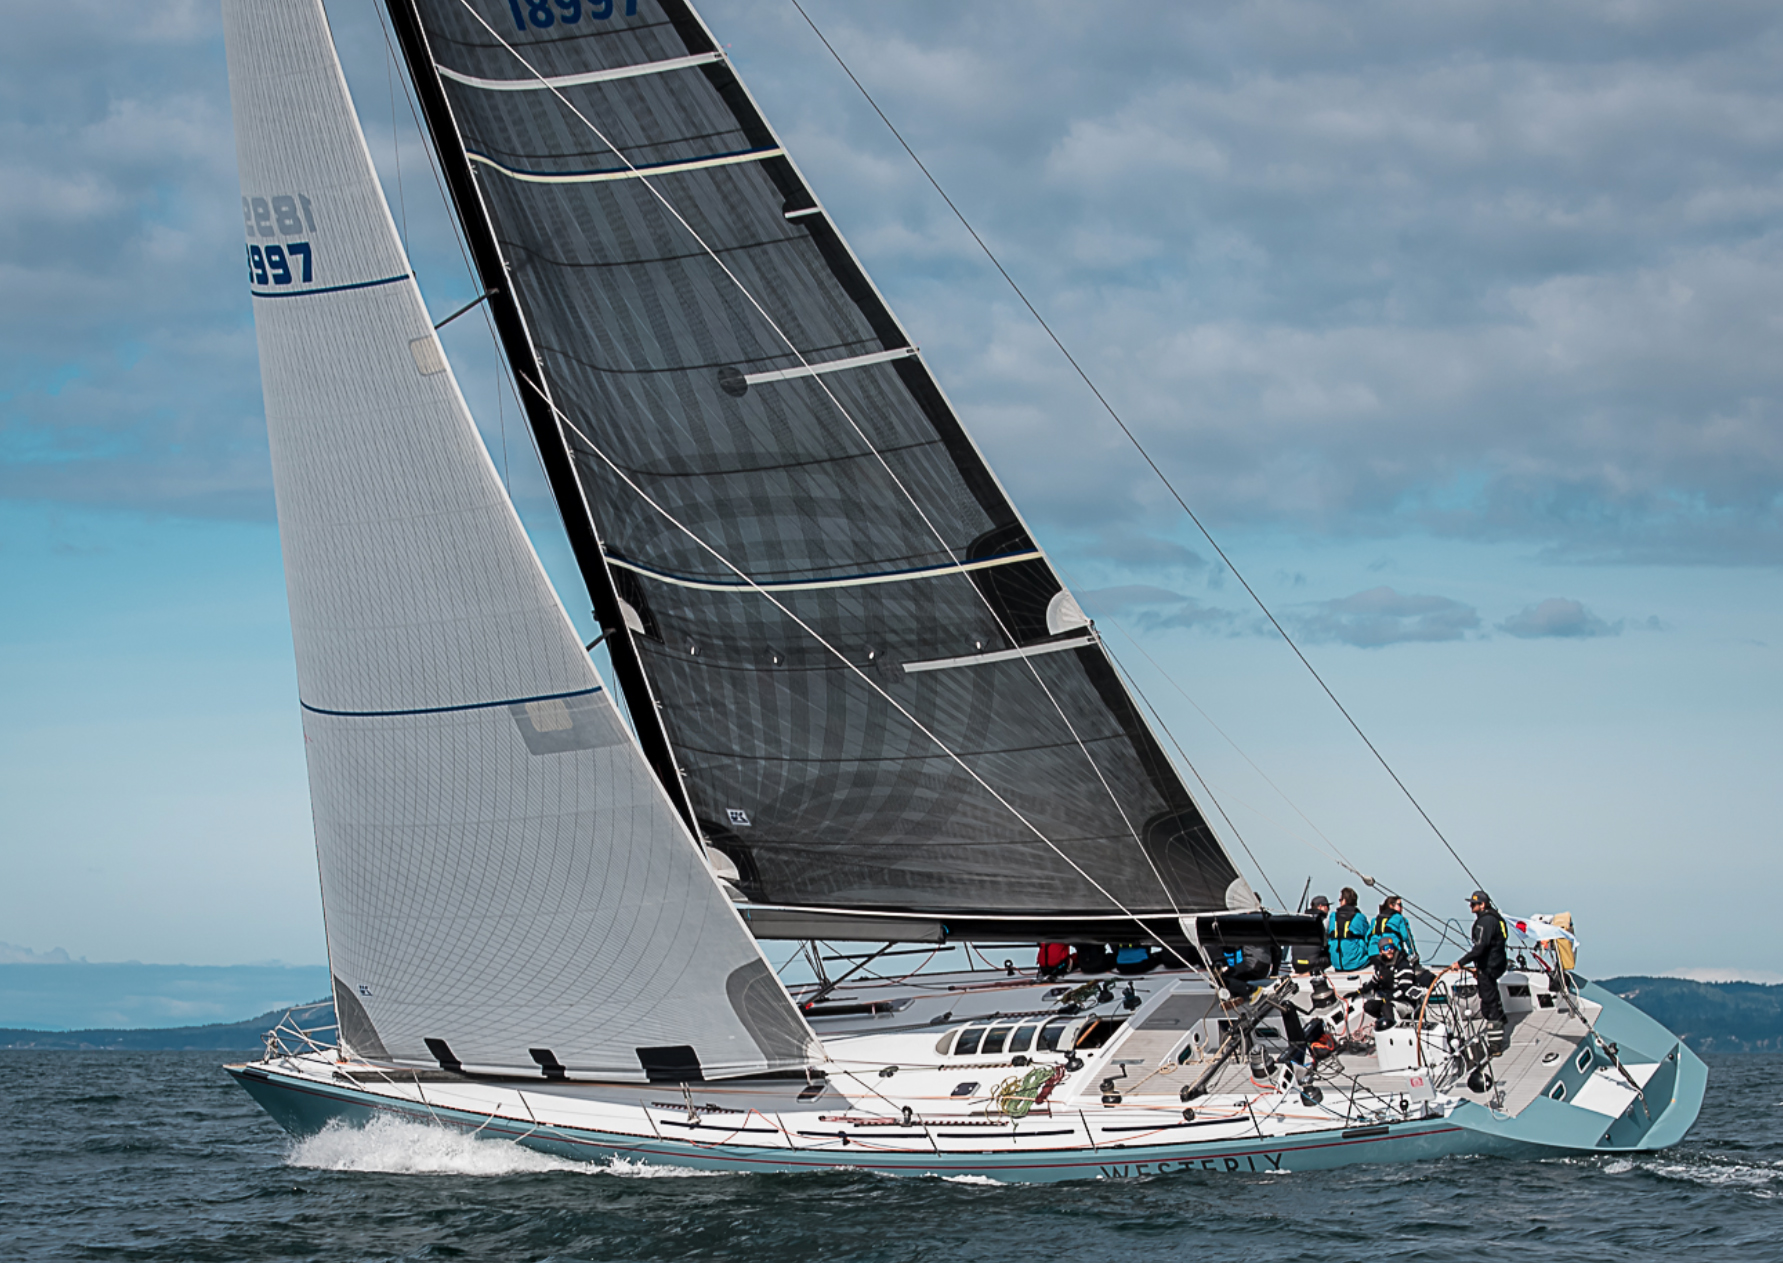 The Santa Cruz 70 WESTERLY going upwind with her X-Drive main and Tape-Drive No. 2 genoa. A big boat makes a great test platform for sails.